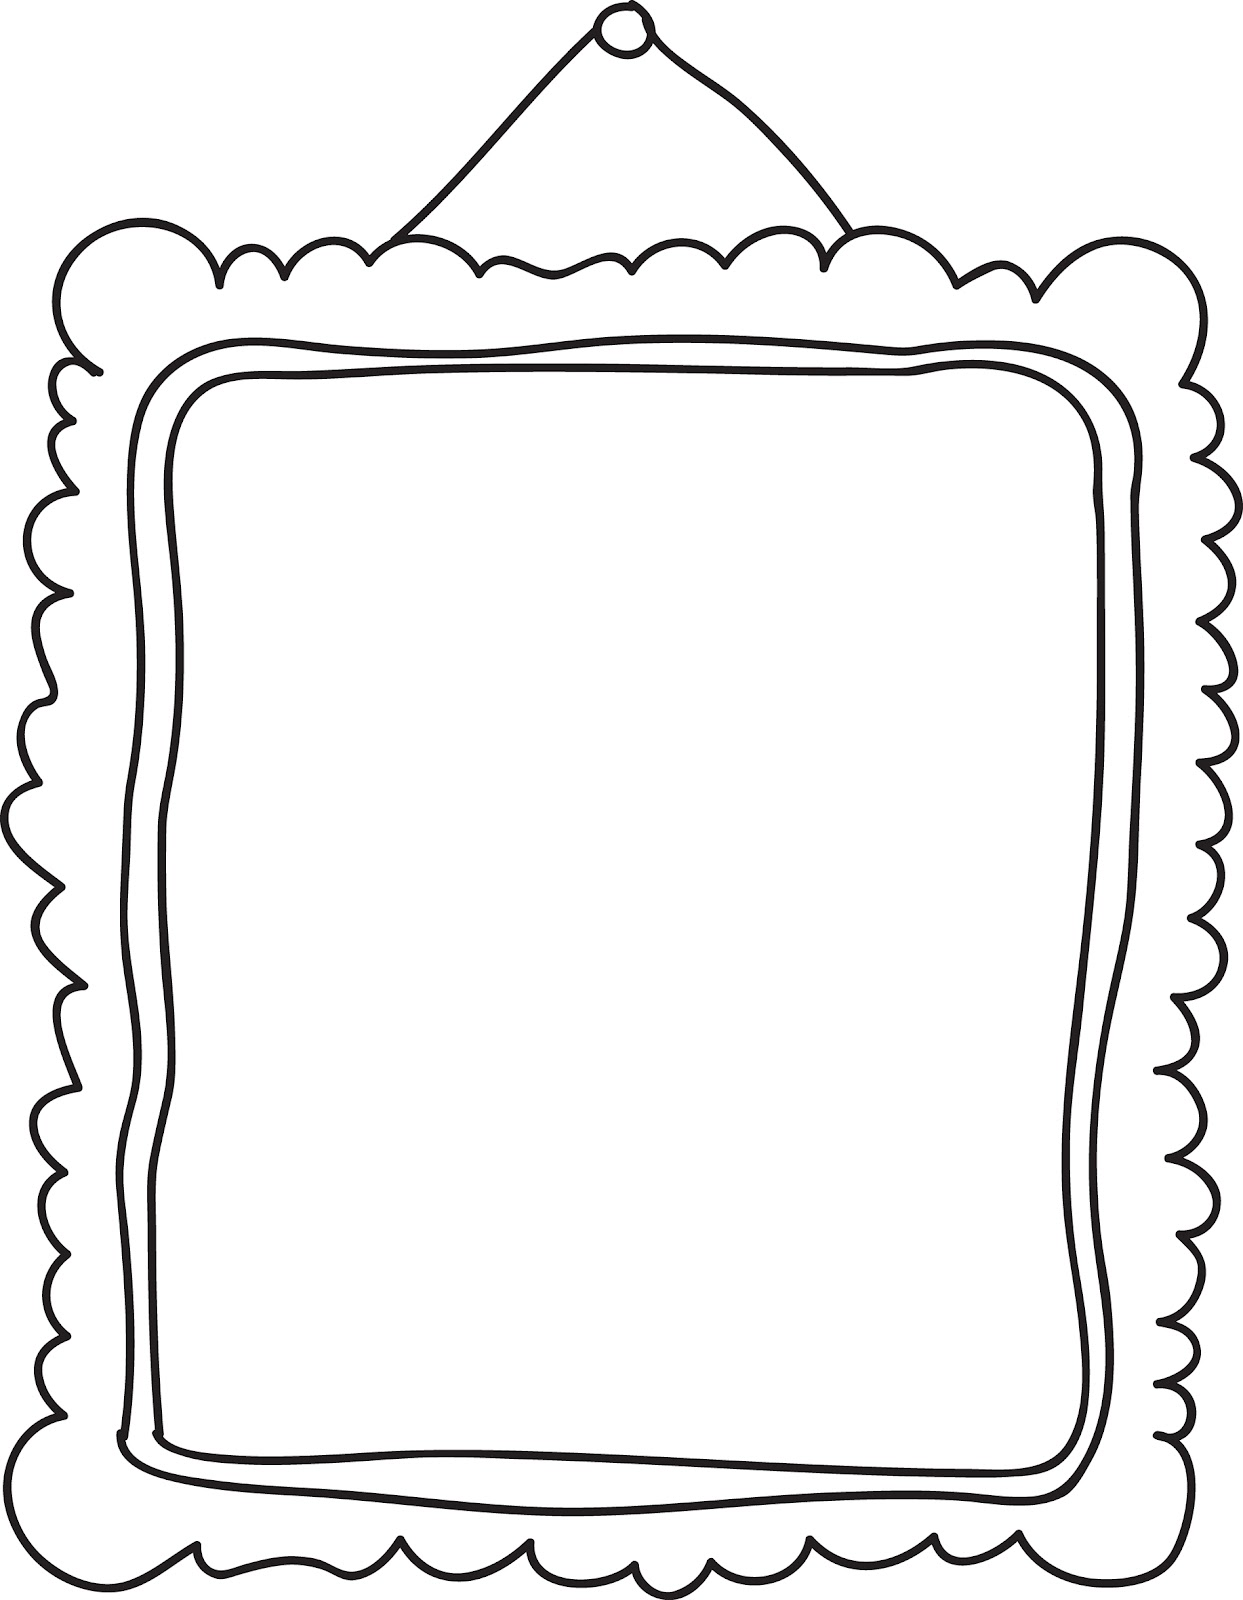 Free Black Cliparts Frames, Download Free Clip Art, Free